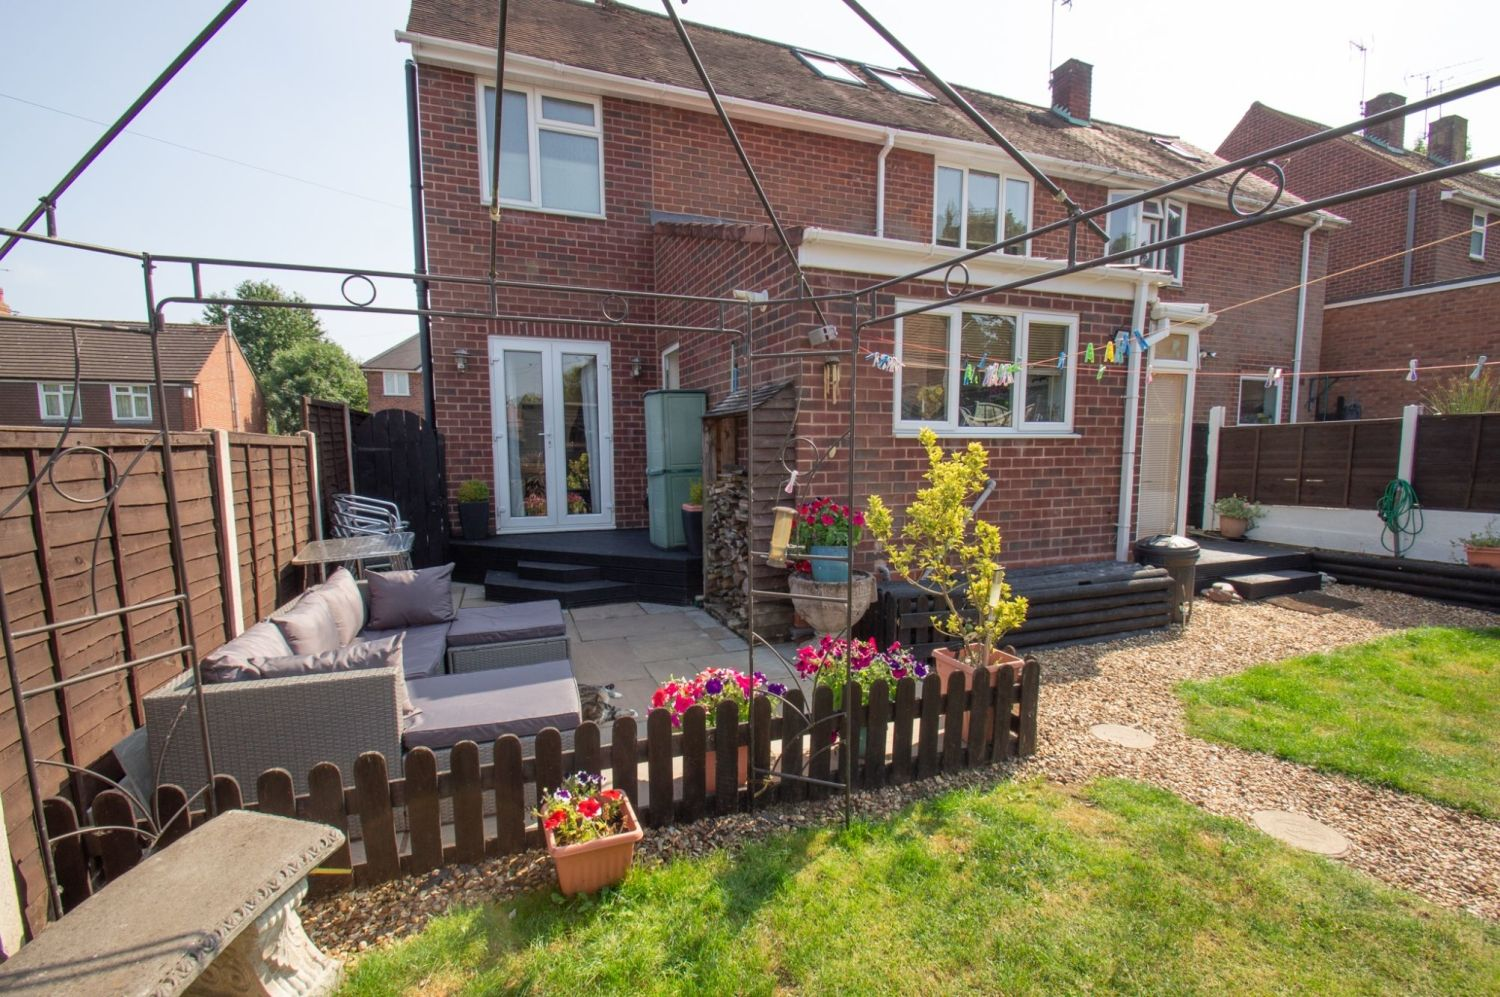 4 bed semi-detached for sale in Oak Street, Kingswinford  - Property Image 21